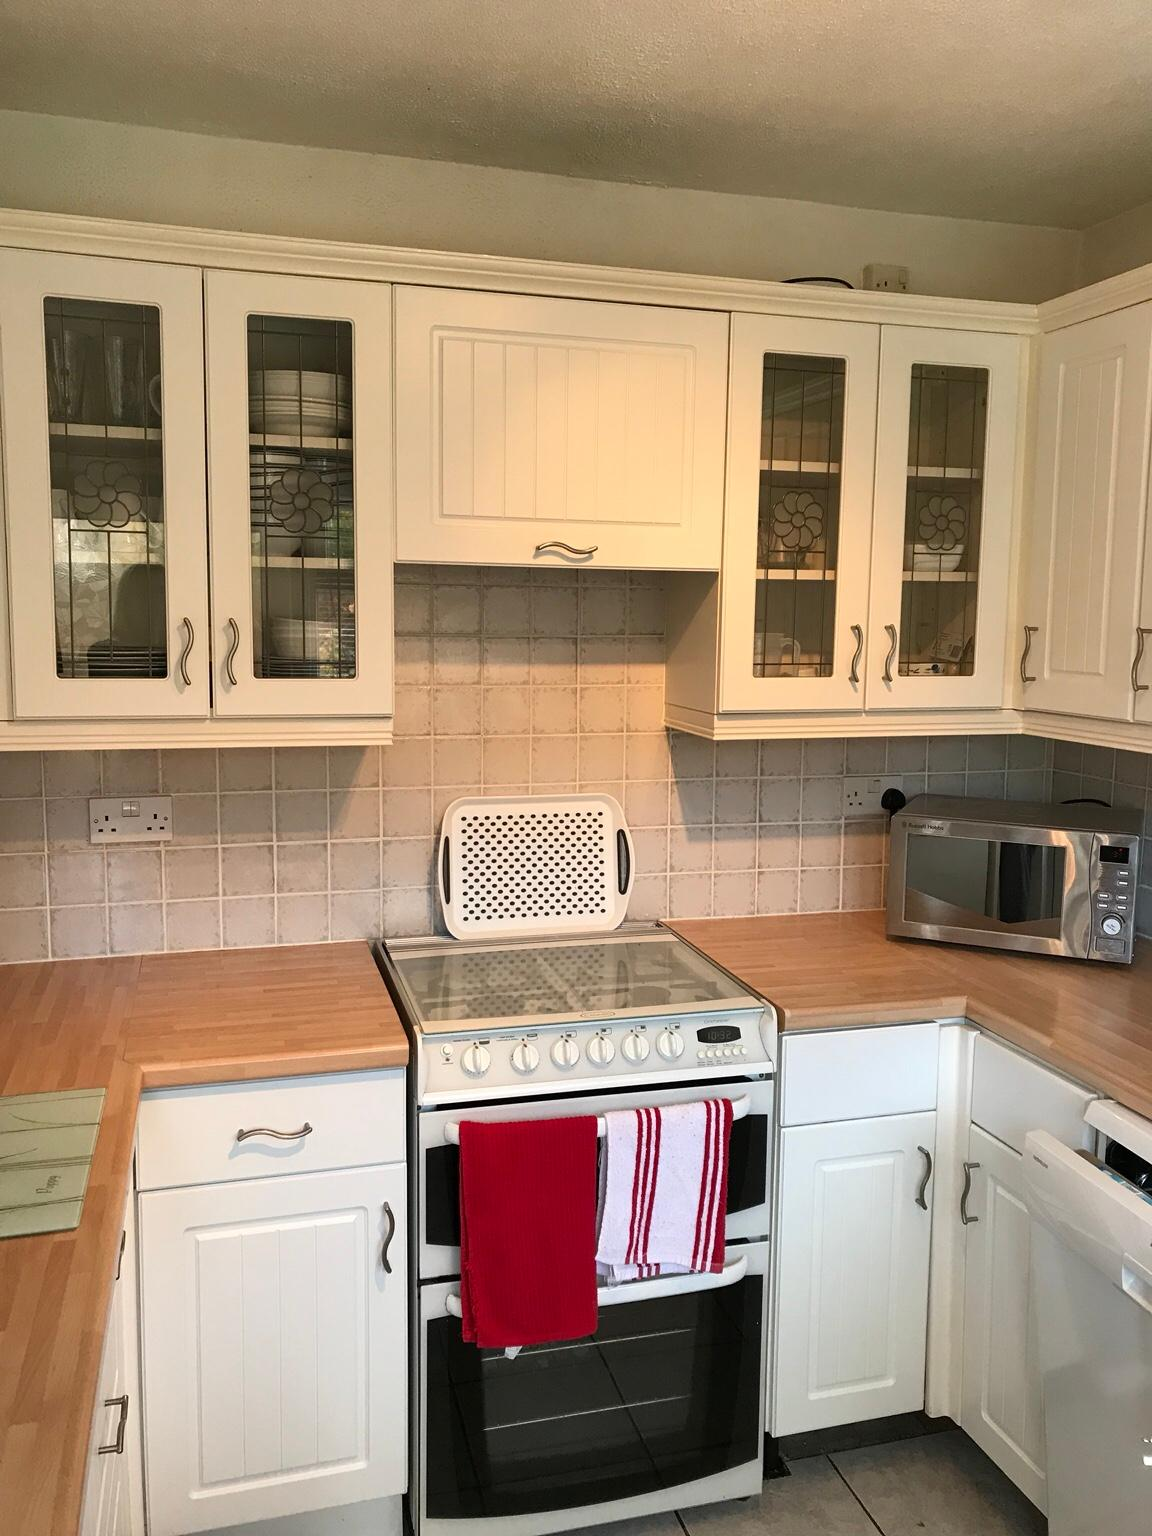 B Q Chilton Country Style Kitchen Doors White In Ws15 Cannock Chase For 55 00 For Sale Shpock